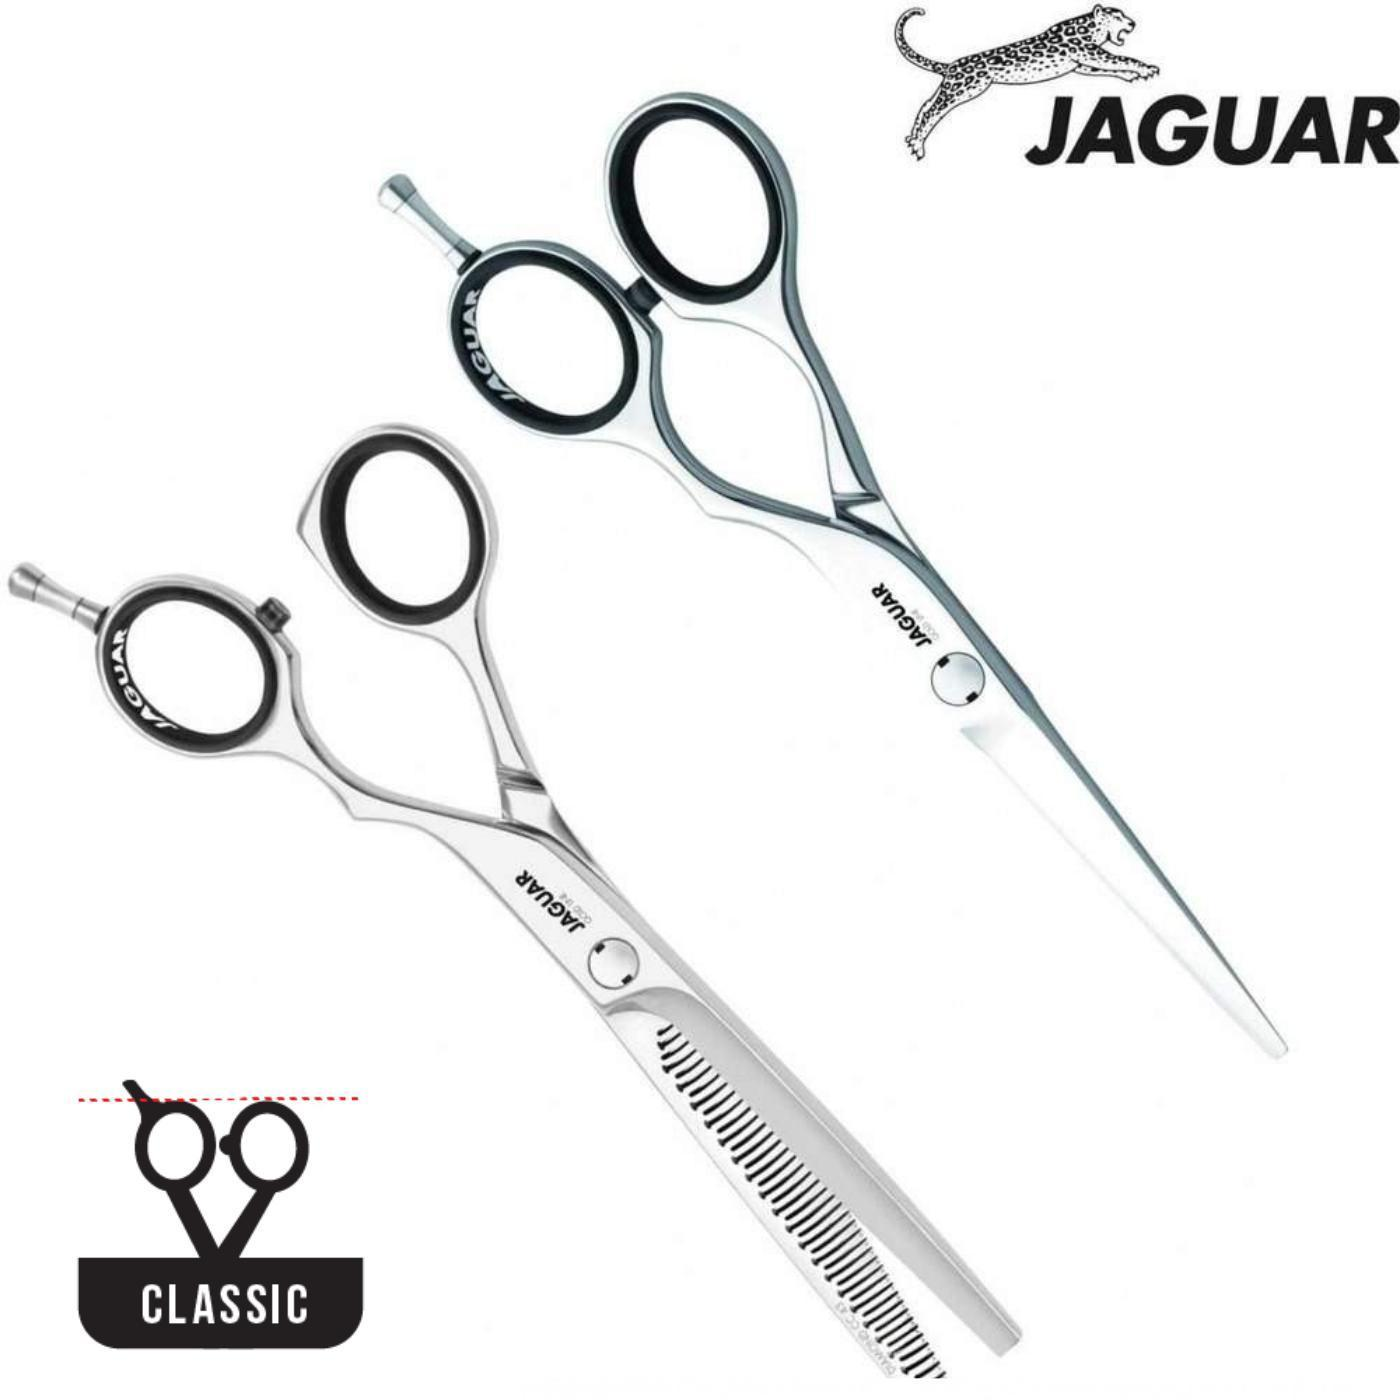 Jaguar Gold Line Diamond Classic Cutting & Thinning Set - Japan Scissors